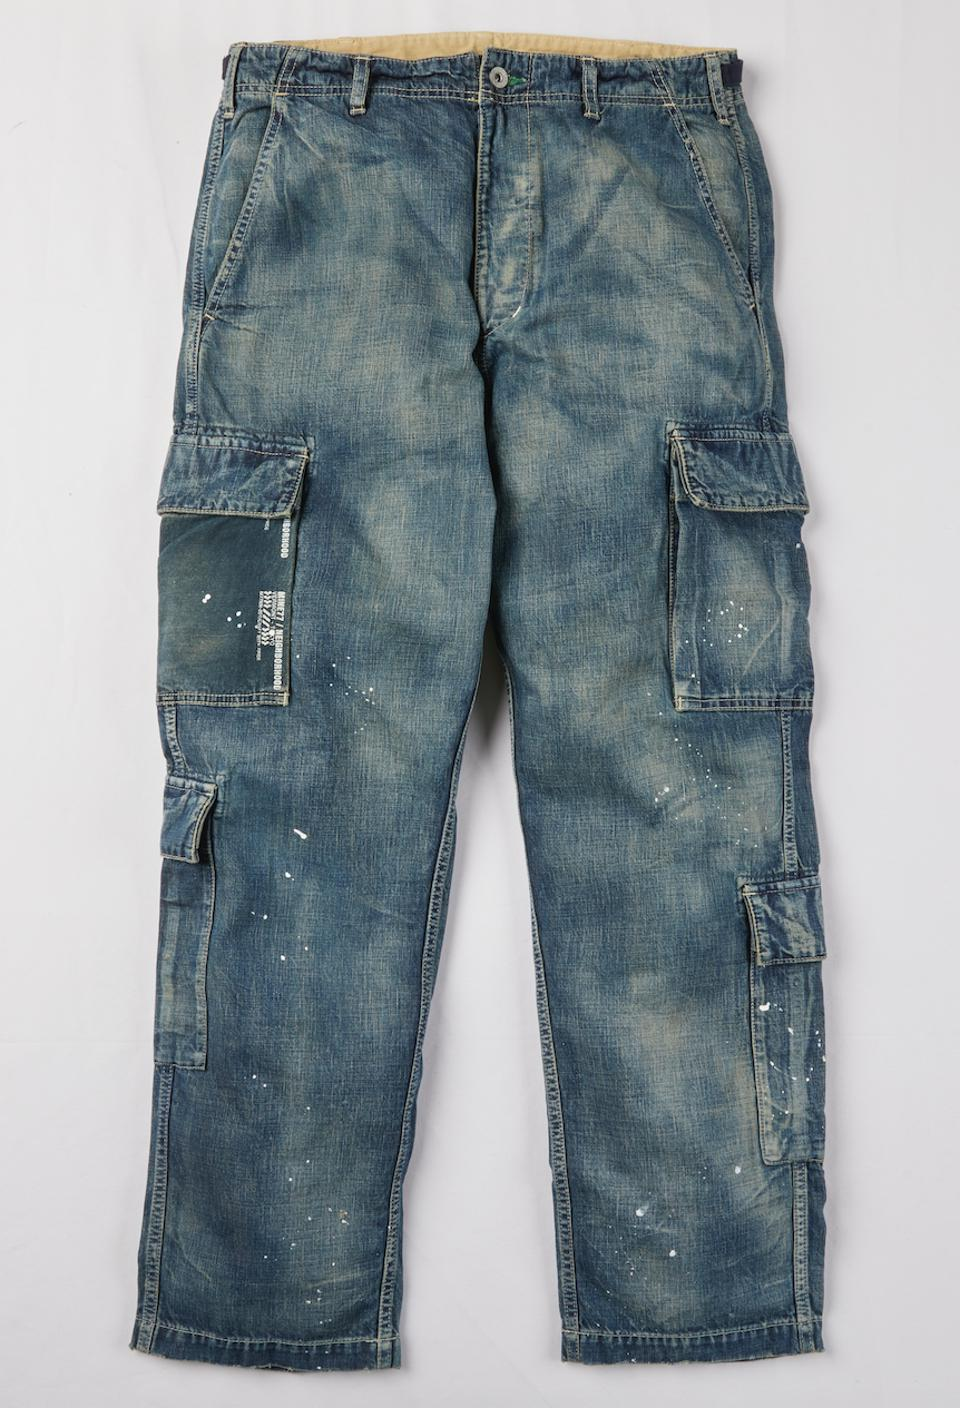 The Burton Mine77 x NEIGHBORHOOD 8-Pocket Cargo Jeans – 100% Premium Cotton Flannel; Upper and Lower Leg Cargo Pockets; Magnetic Fly Opening; Distressed Denim Effect